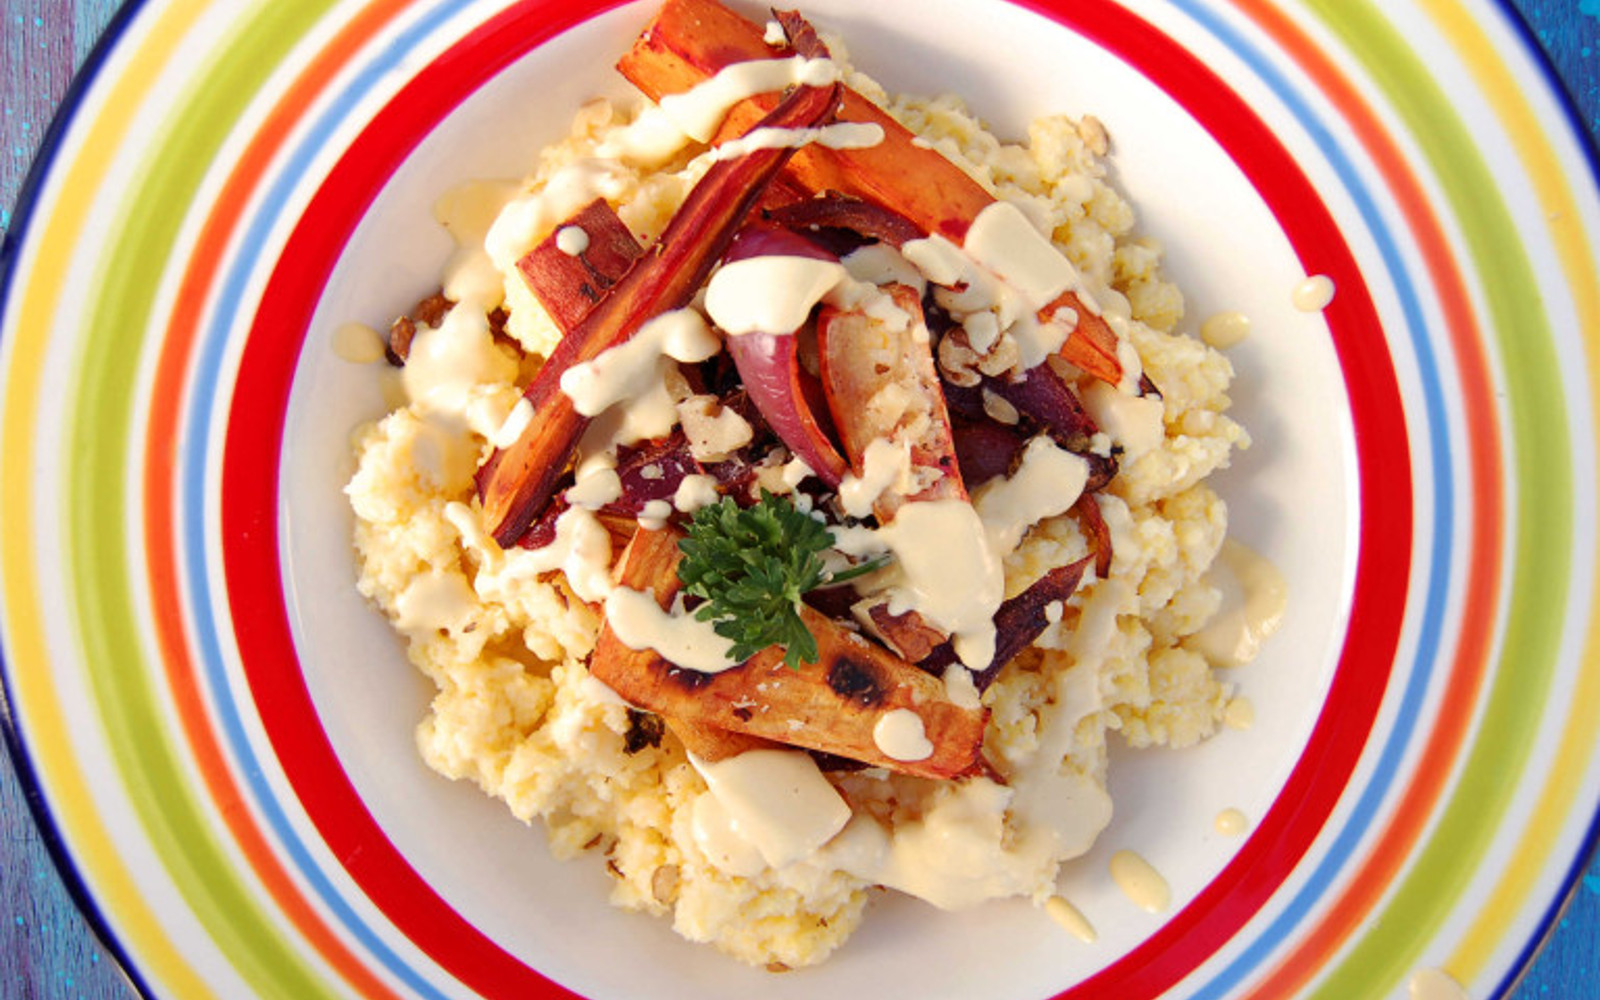 Coconut Polenta With Roasted Root Veggies